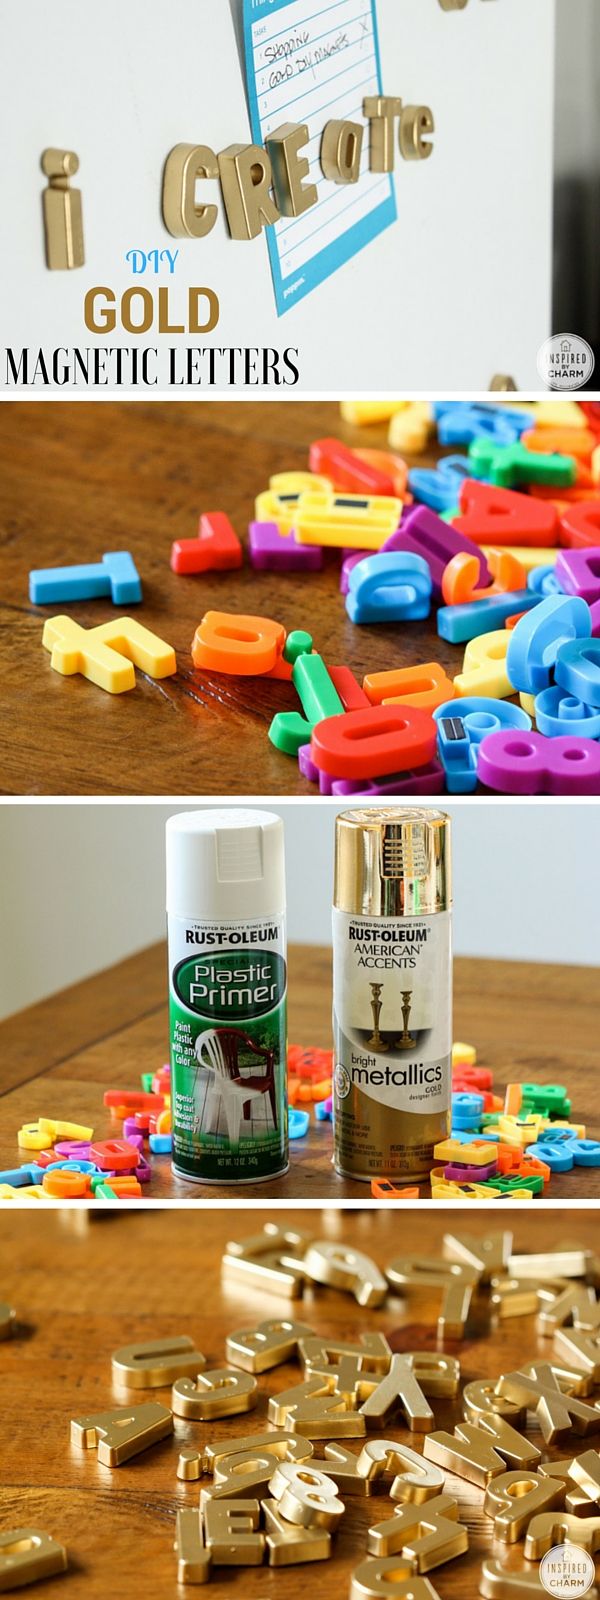 Check out the tutorial: #DIY Gold Magnetic Letters @istandarddesign